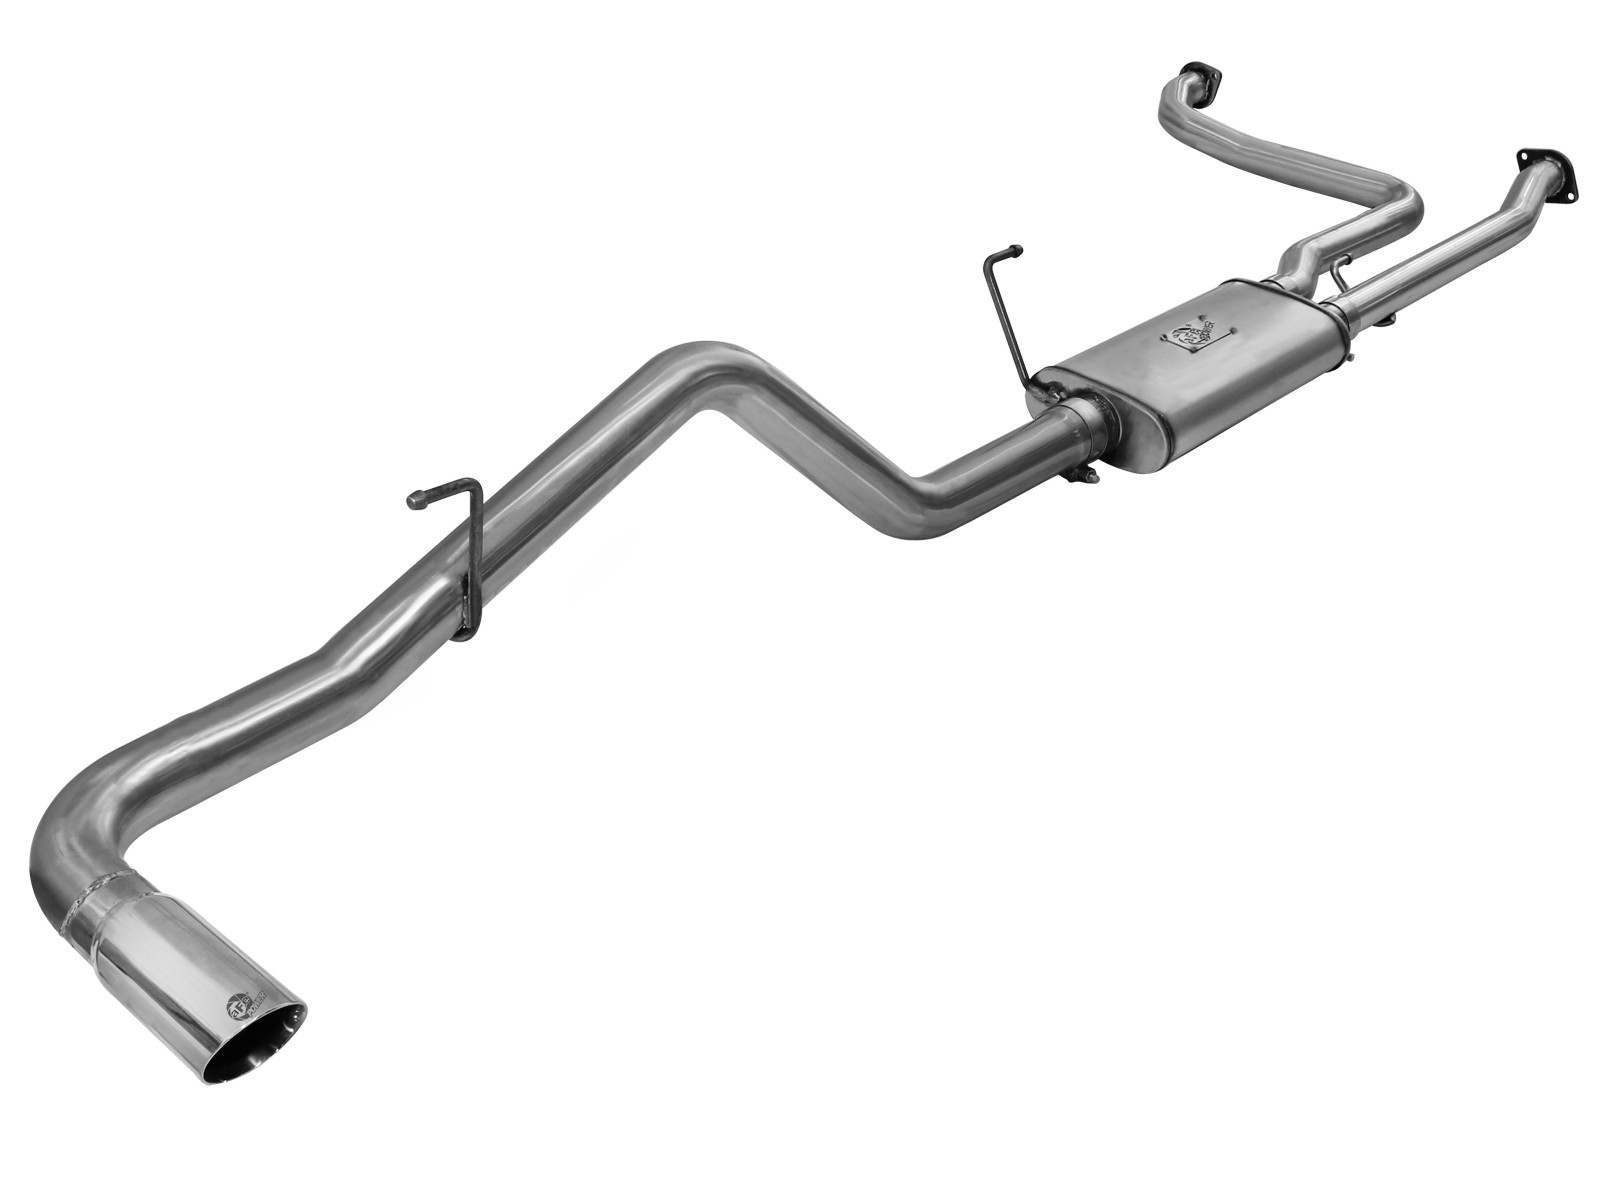 "aFe POWER 49-46101-1 MACH Force-Xp 2-1/2"" to 3"" 409 Stainless Steel Cat-Back Exhaust System"